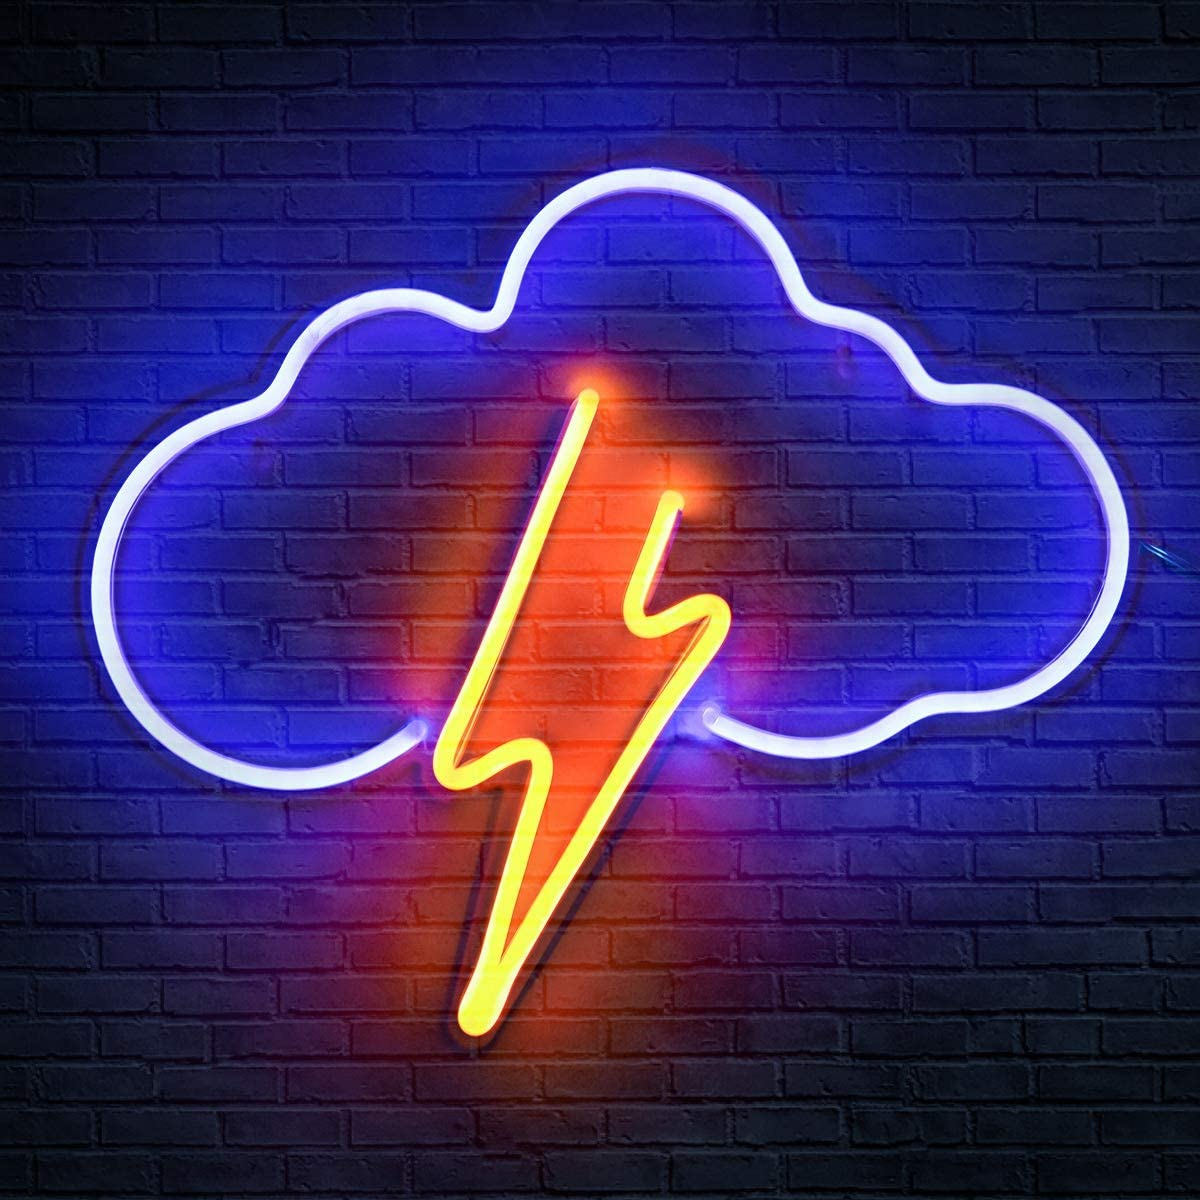 Koicaxy Neon Sign, Cloud Led Neon Light Wall Light Wall Decor, Battery or USB Powered Light Up Acrylic Neon Sign for Bedroom, Kids Room, Living Room, Bar, Party, Christmas, Wedding